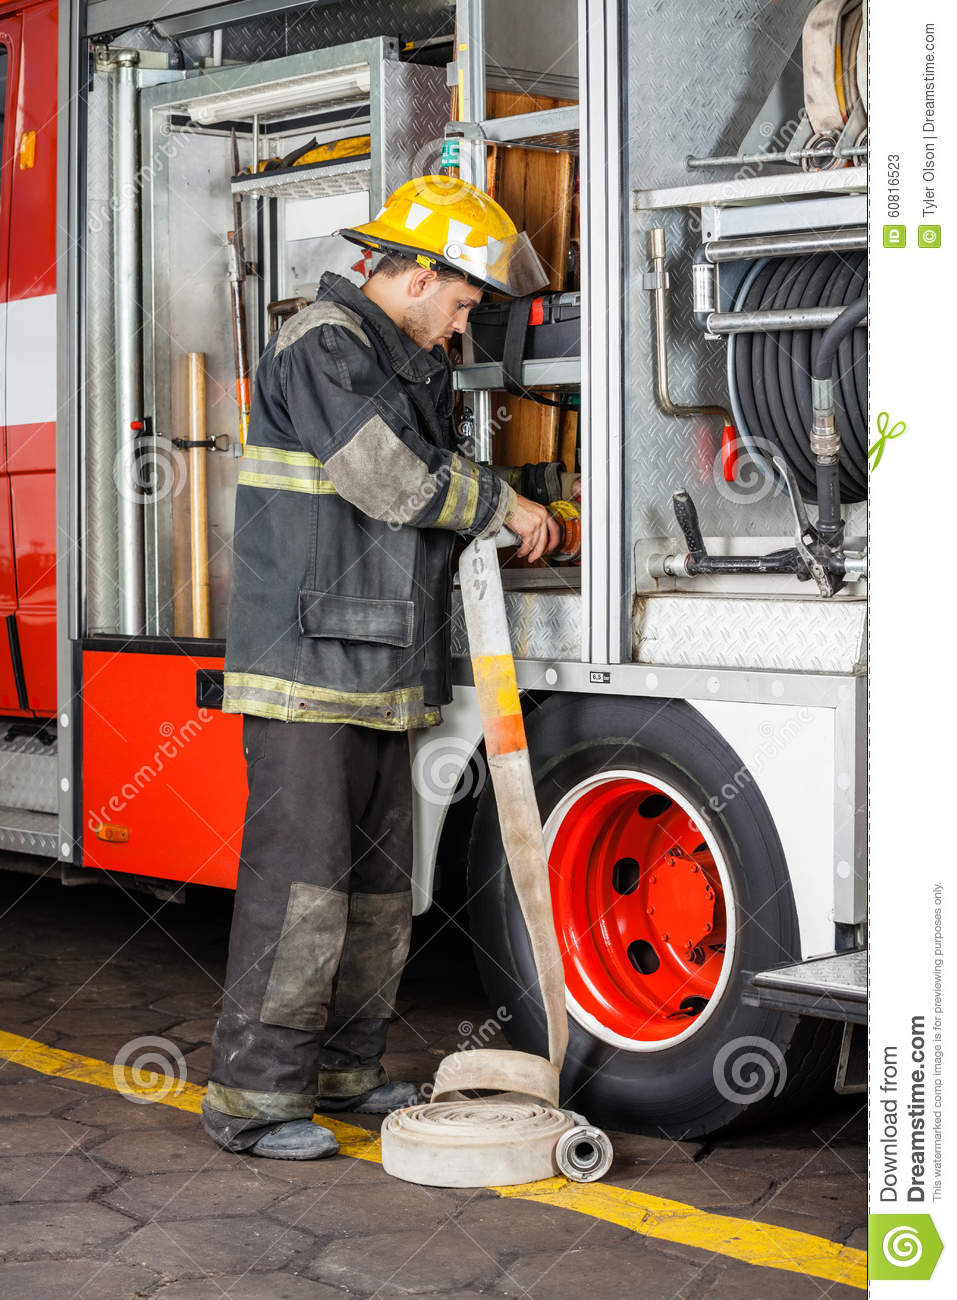 Pompiere Fixing Water Hose in camion